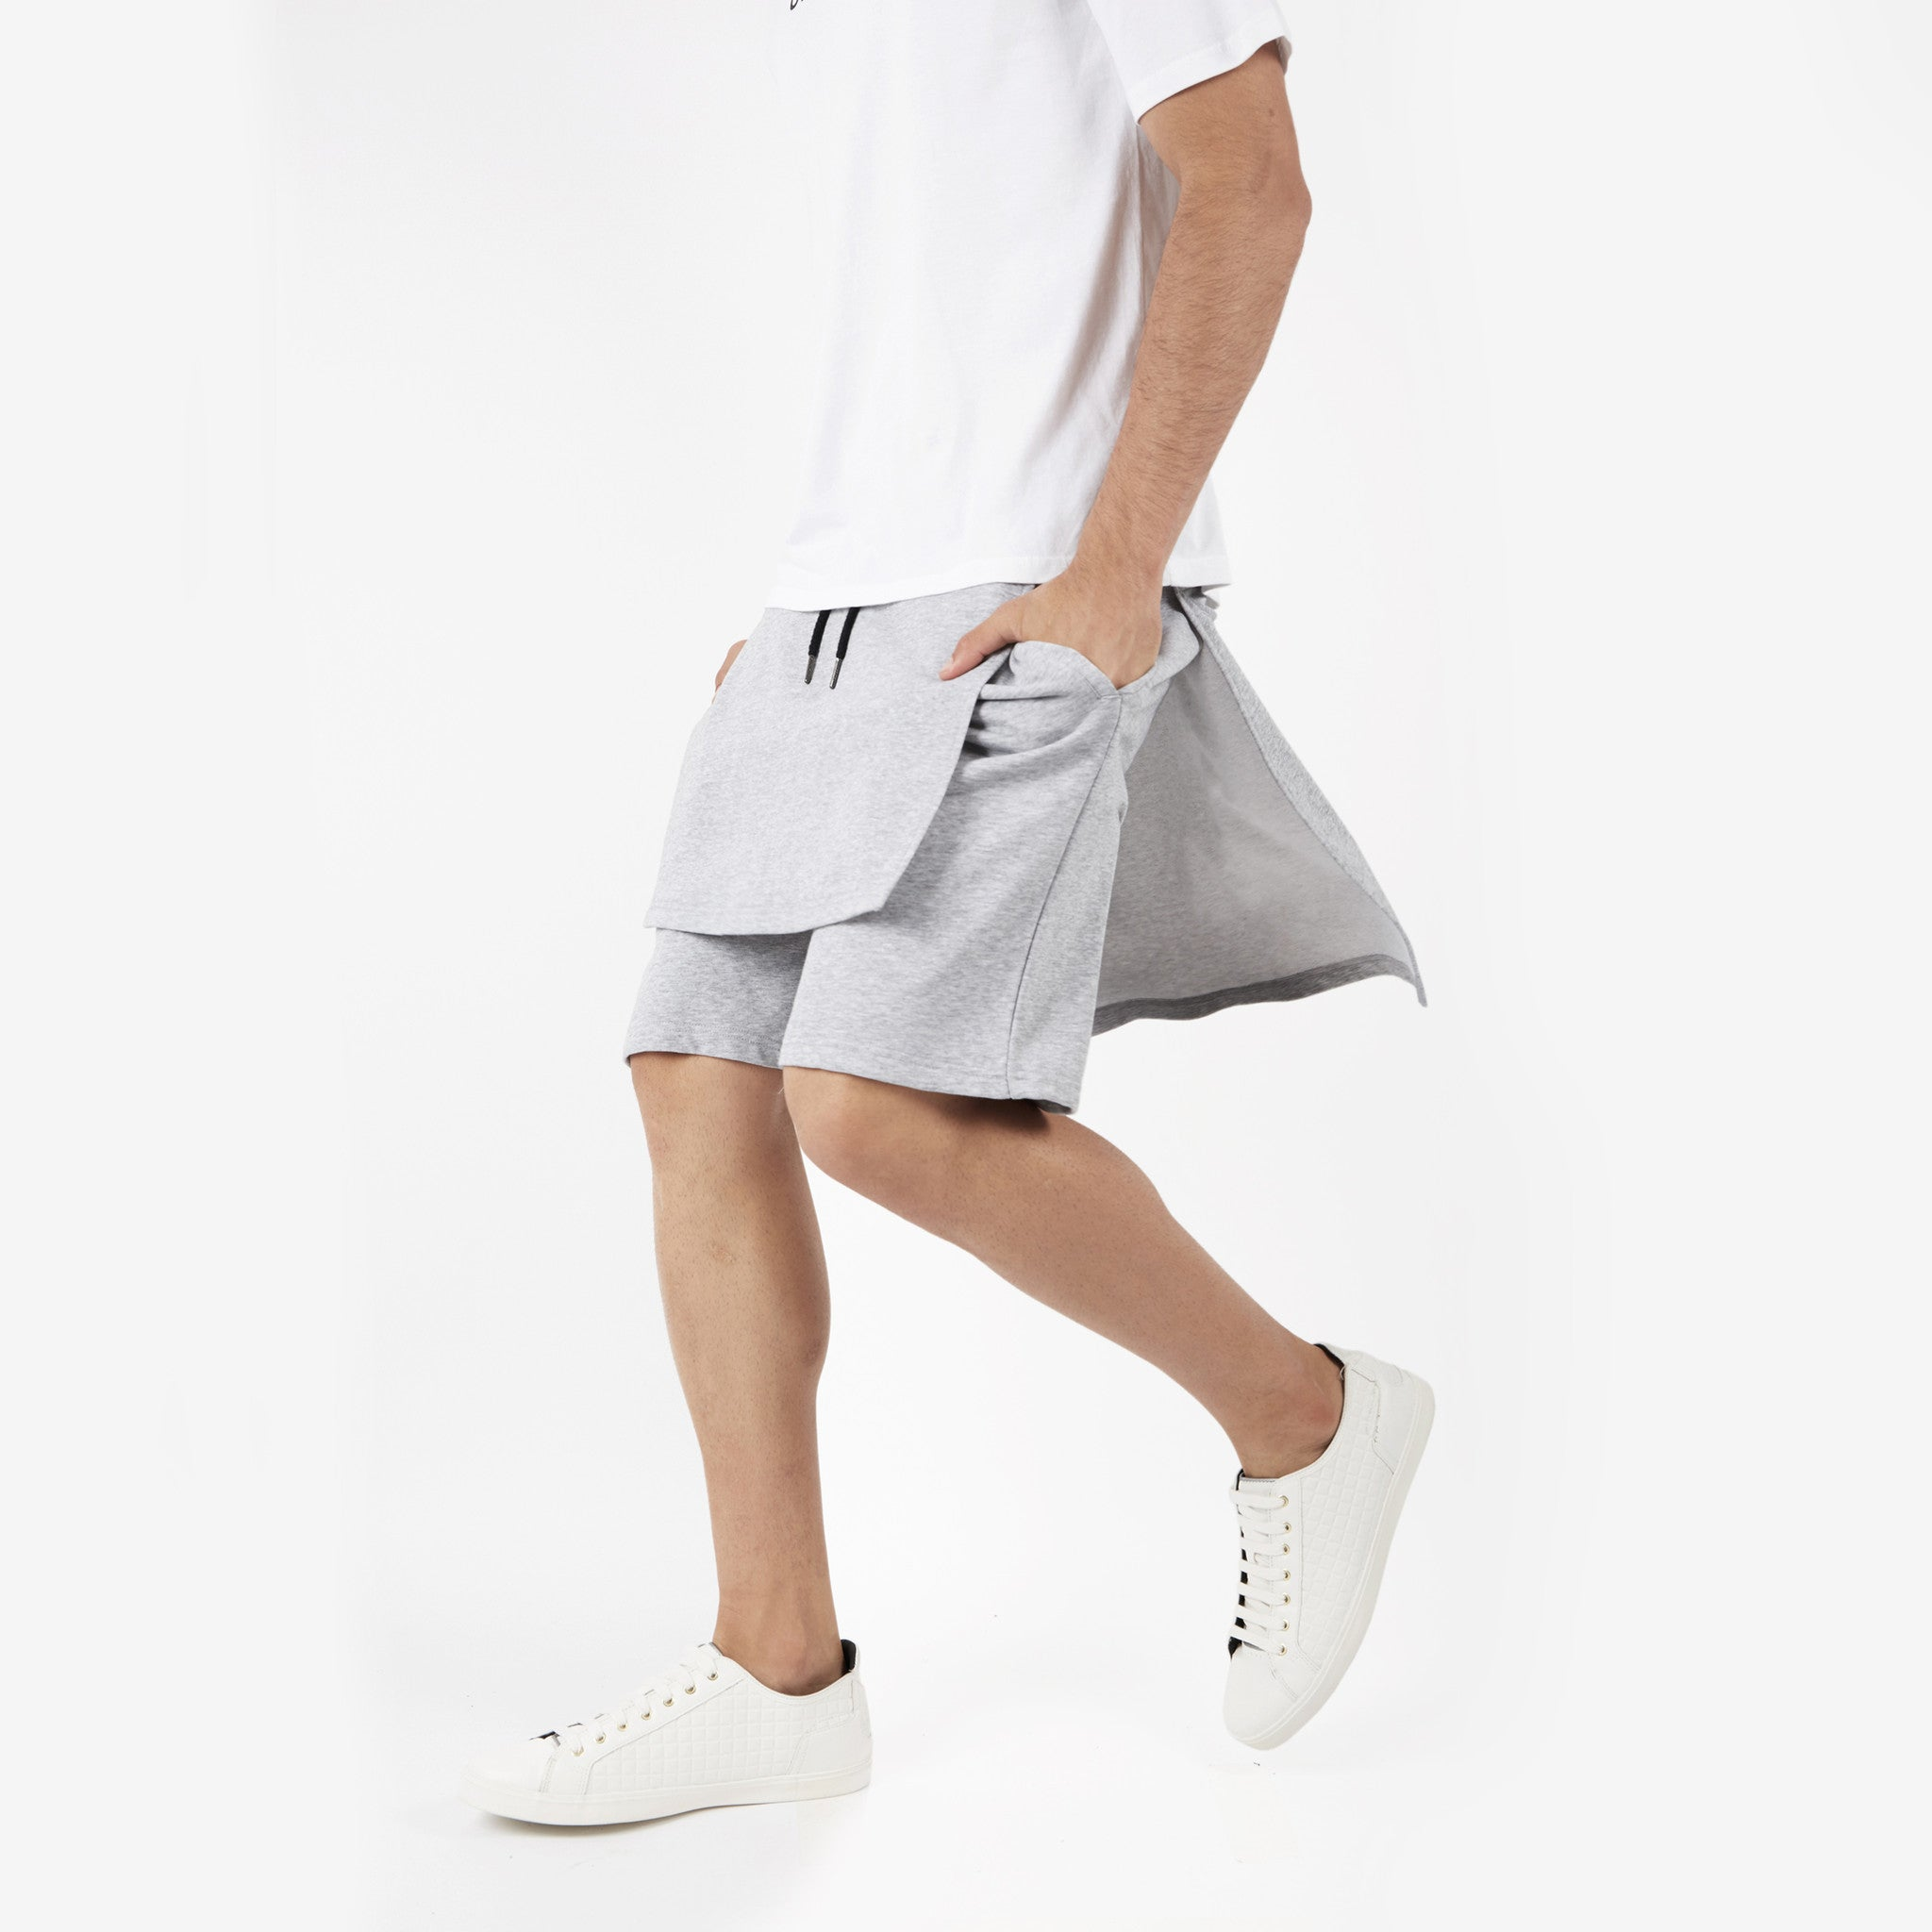 SR054 Layered Shorts - Grey - underated london - underatedco - 5